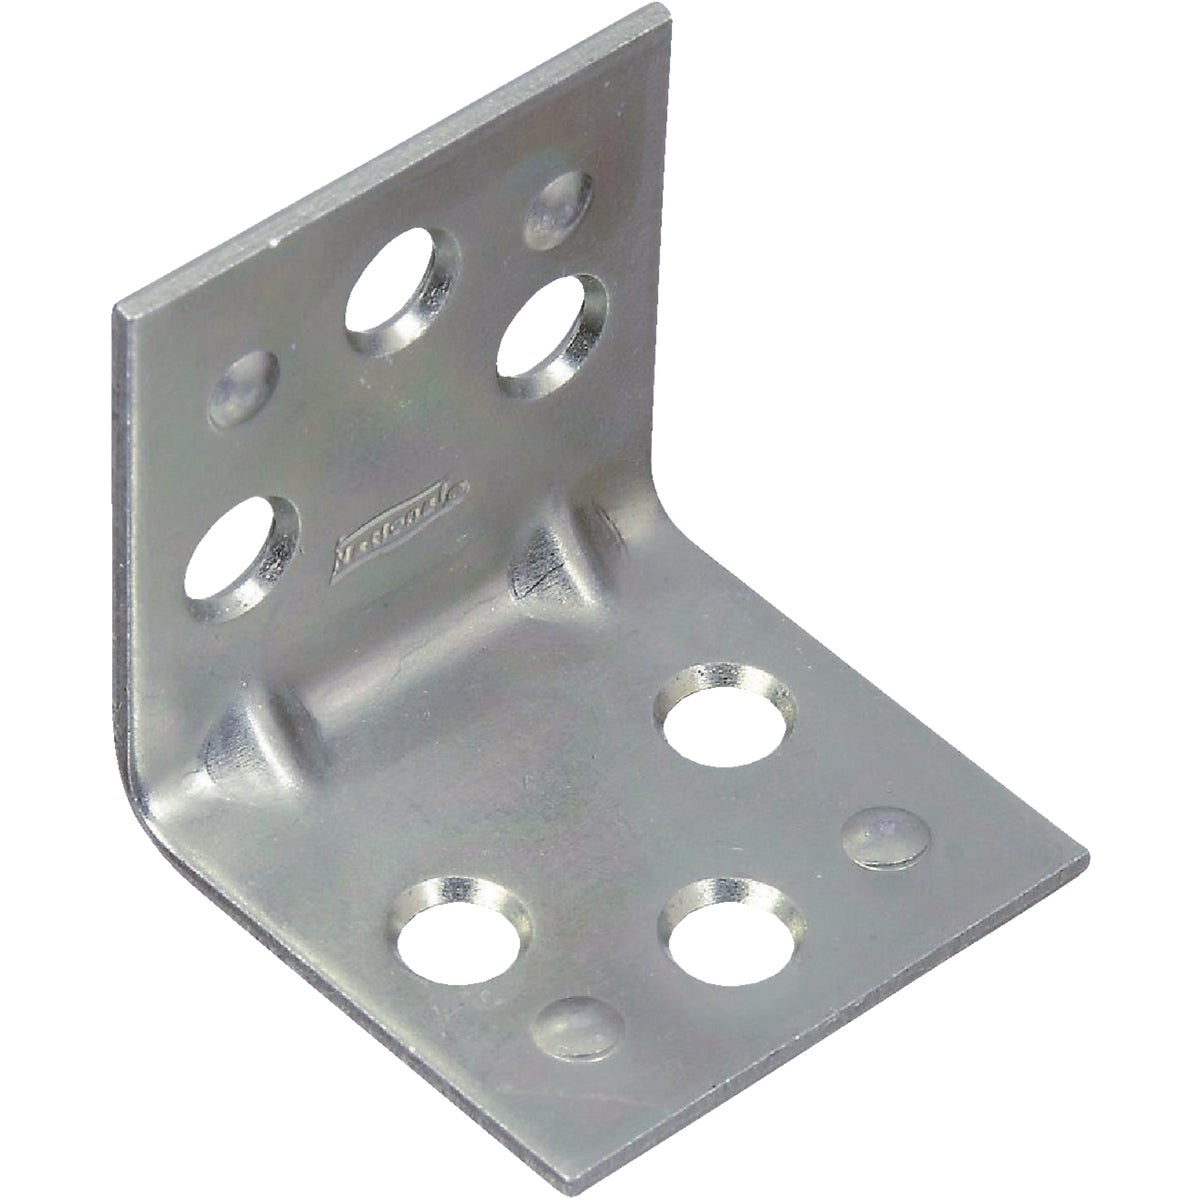 "1-1/2"" DBL CORNER BRACE - N285544 by National Mfg Co"